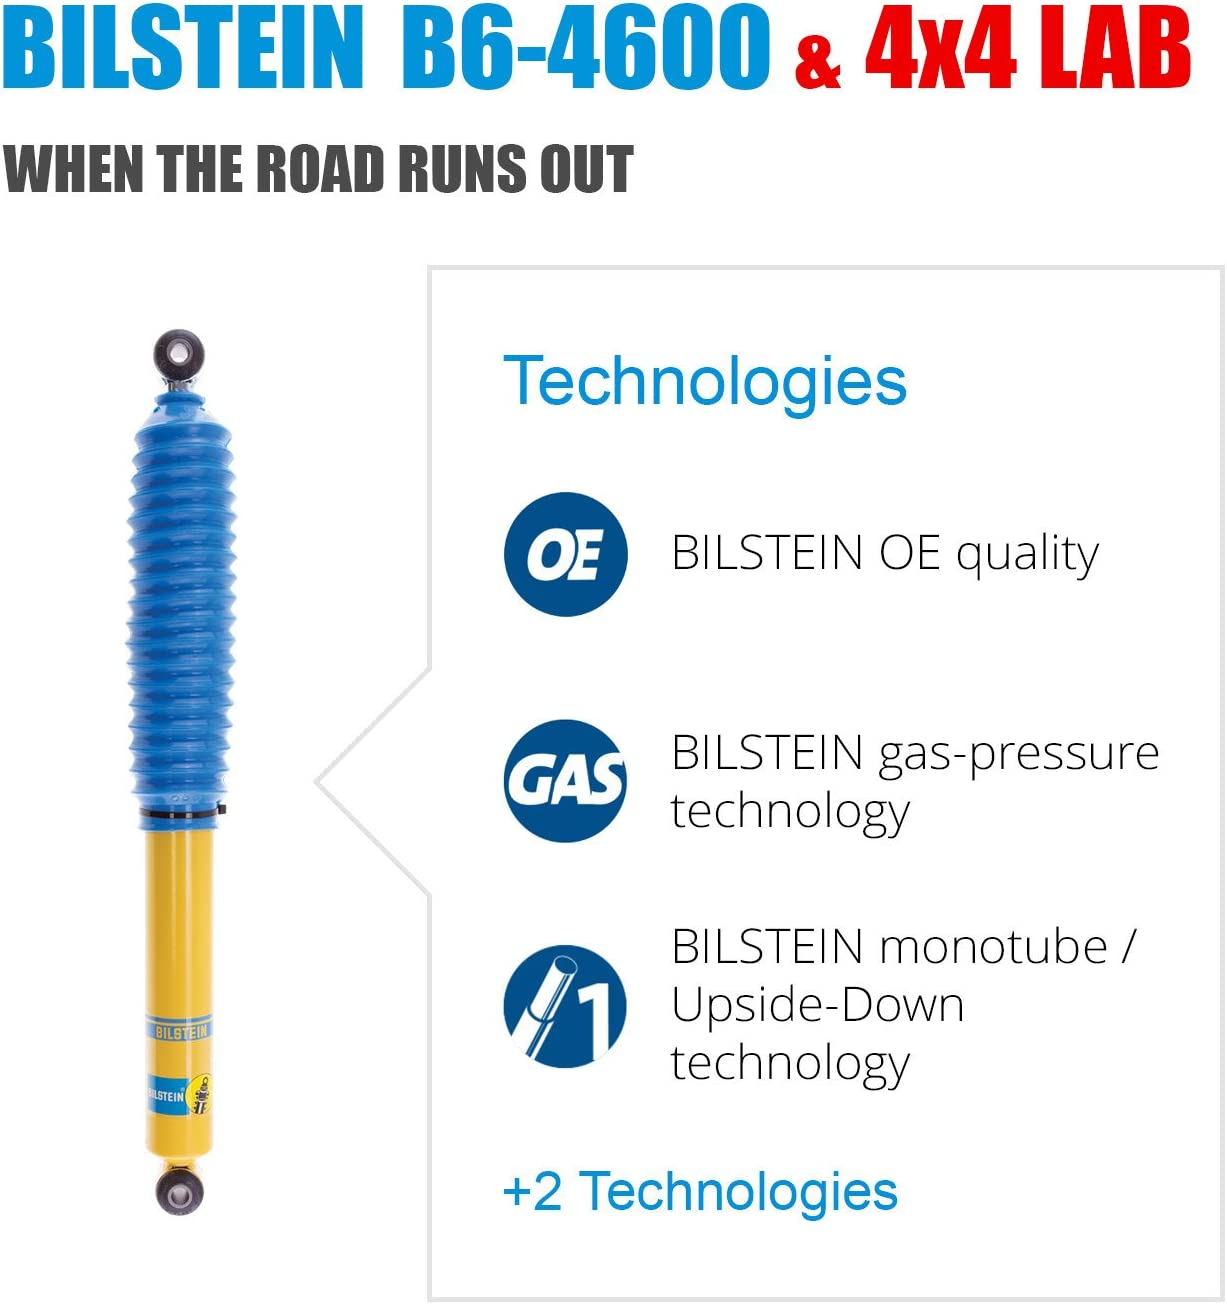 Bilstein B6 4600 Series 4 Shocks Kit for 02-09 Chevy Trailblazer Ride Monotube replacement Gas Charged Shock absorbers part number 24-103336 24-103350